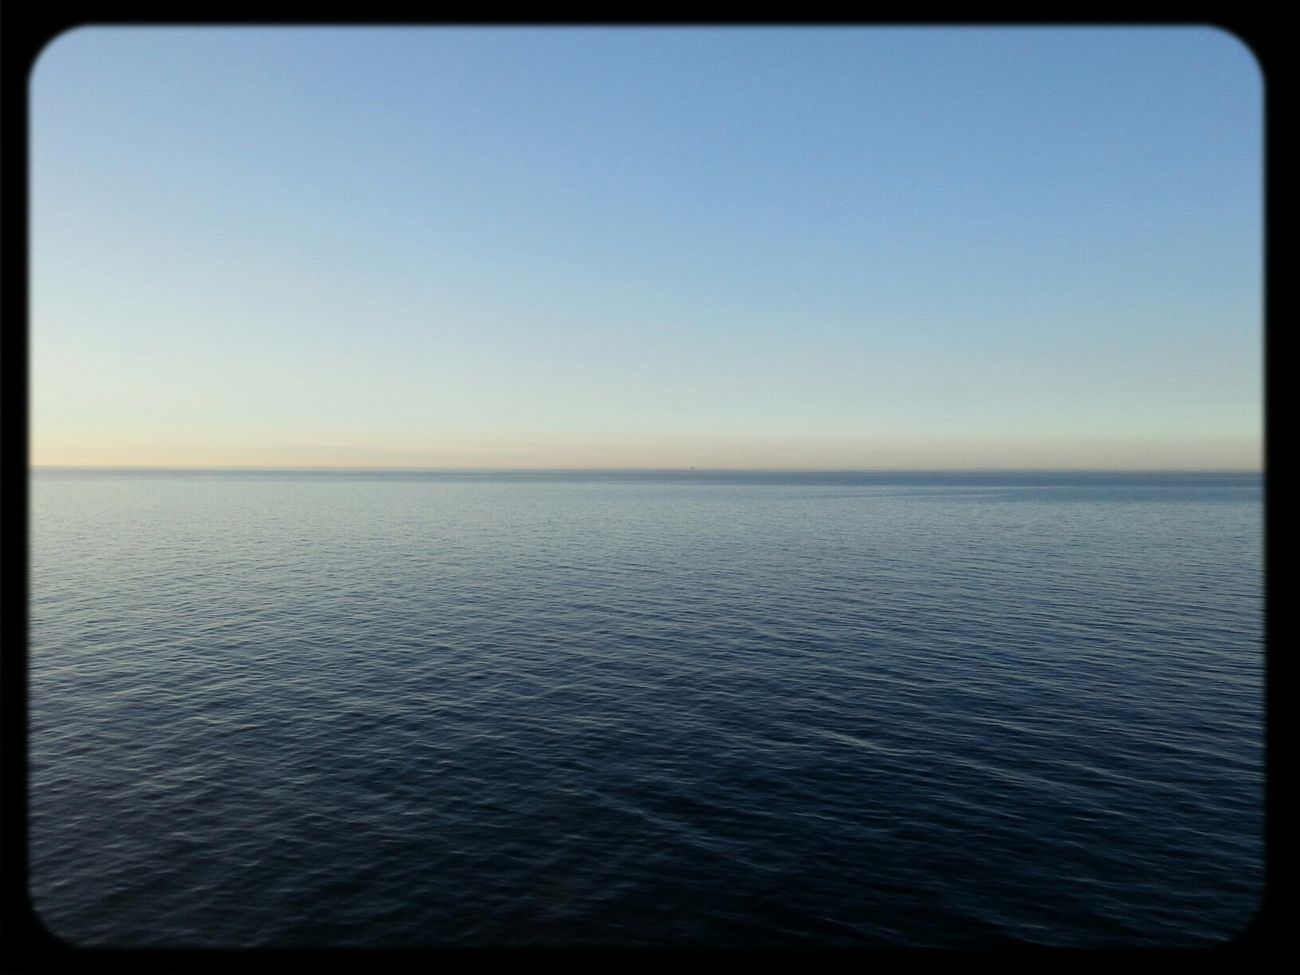 Tallink Sky And Sea Calm water